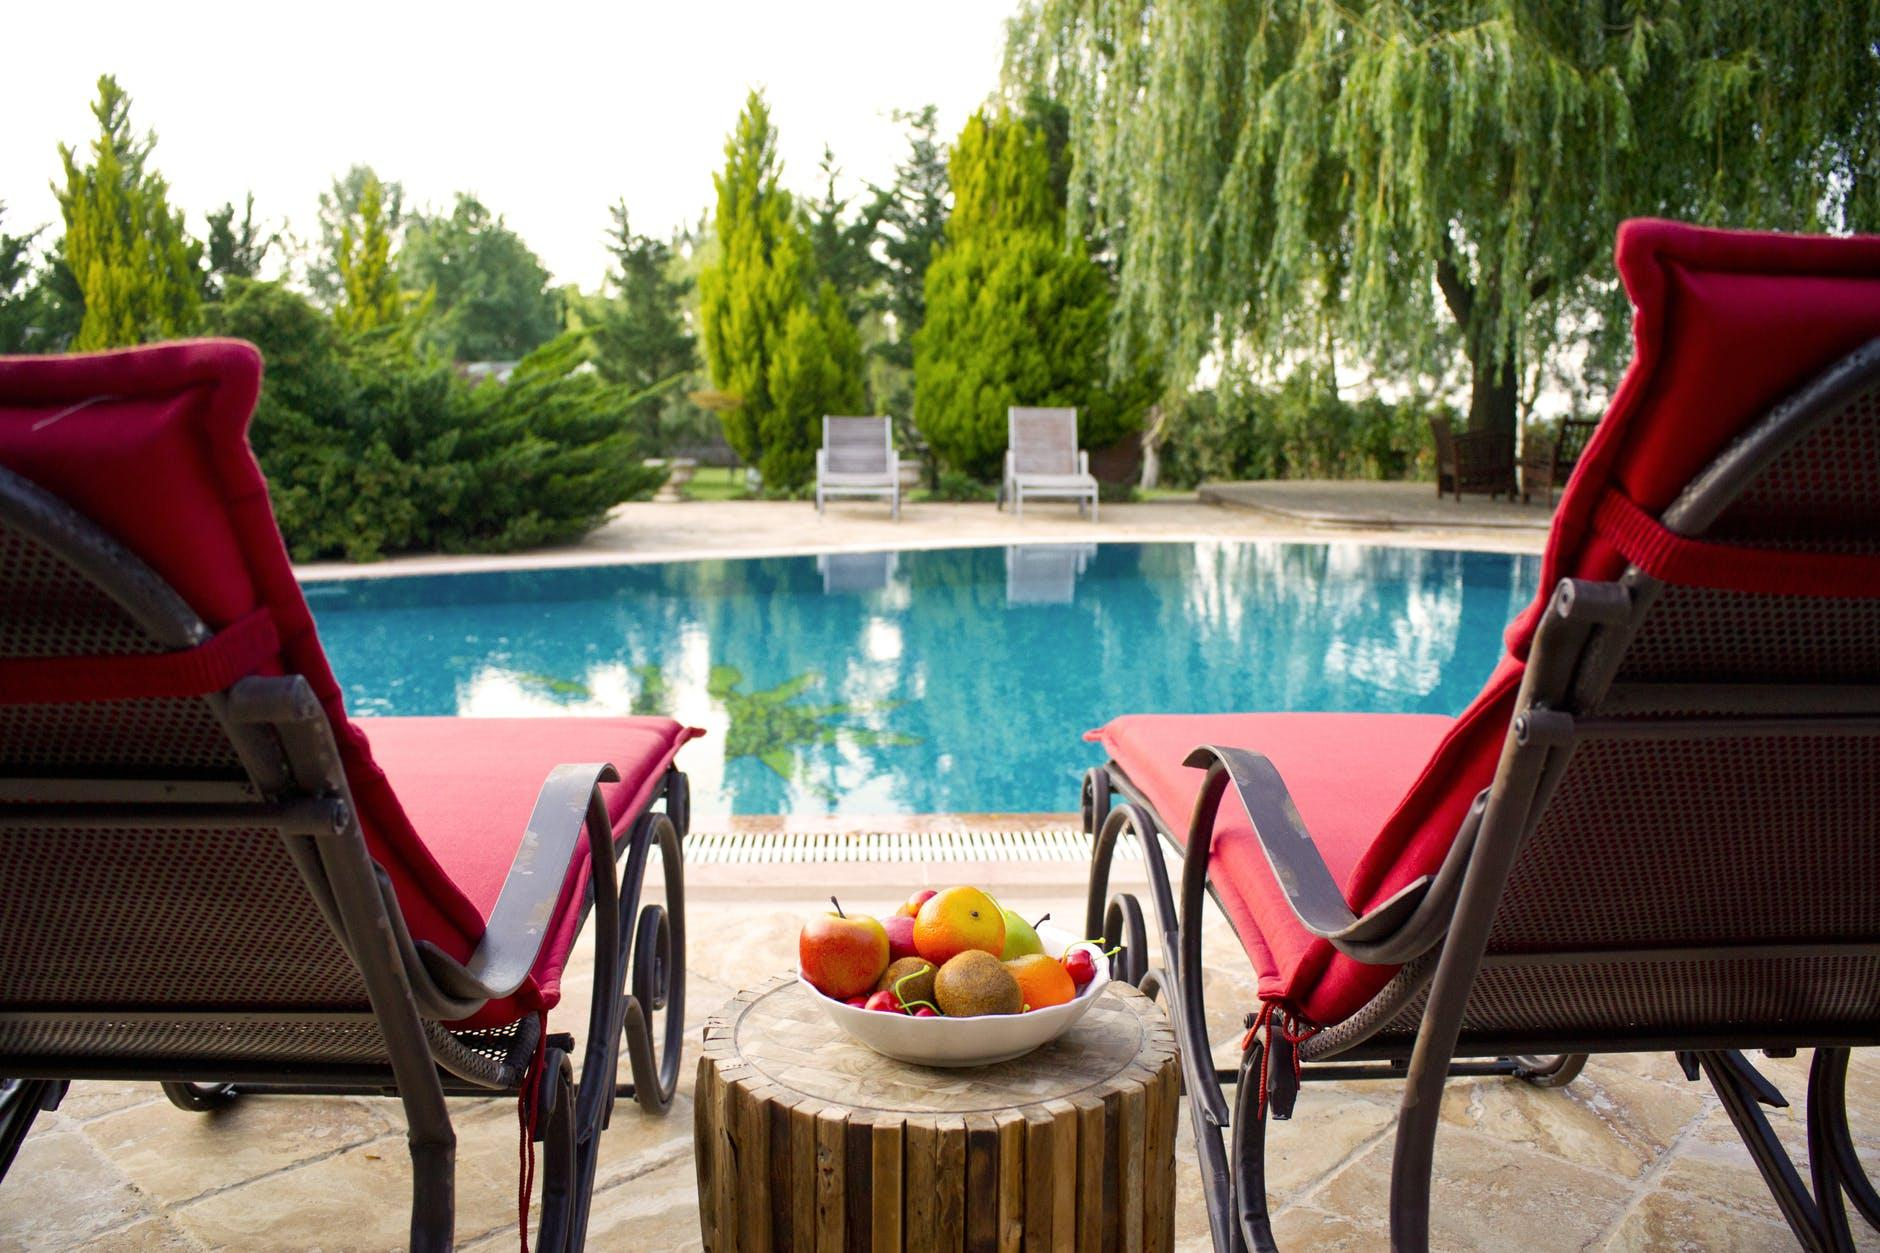 The Pros and Cons of Having a Pool in Your Backyard